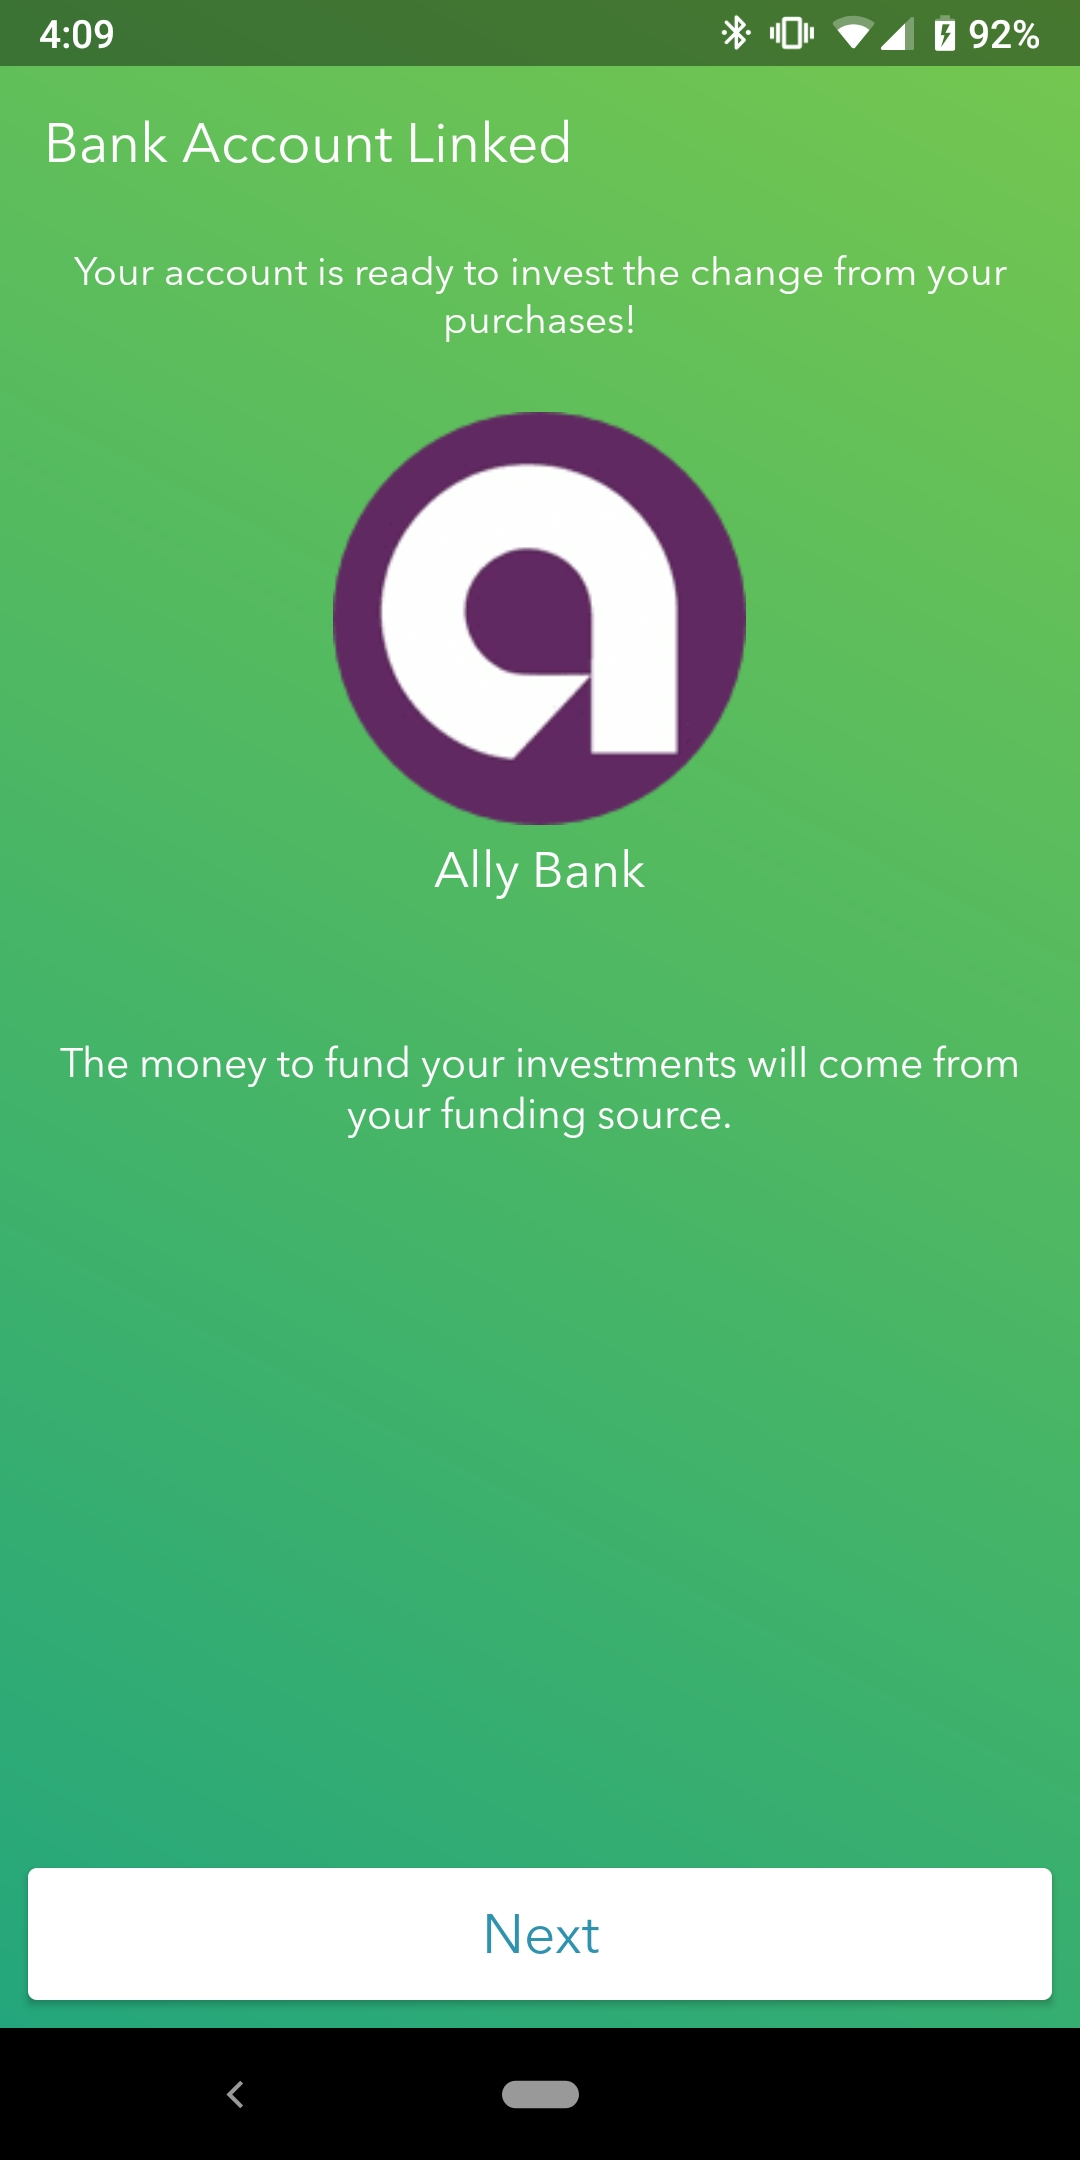 Acorn's second success screen after linking a bank account on their mobile app